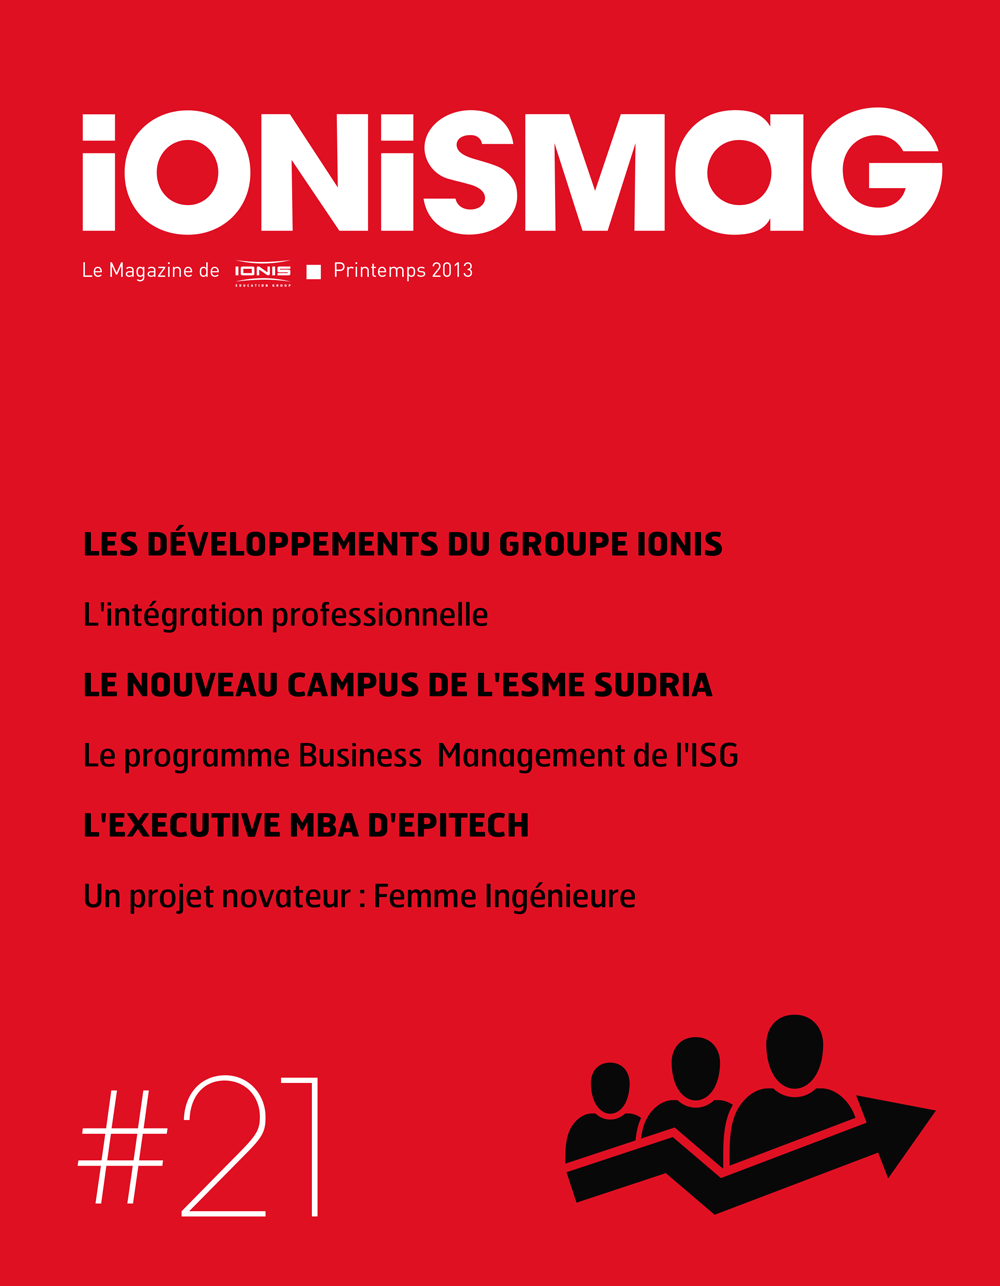 IONIS MAG 21